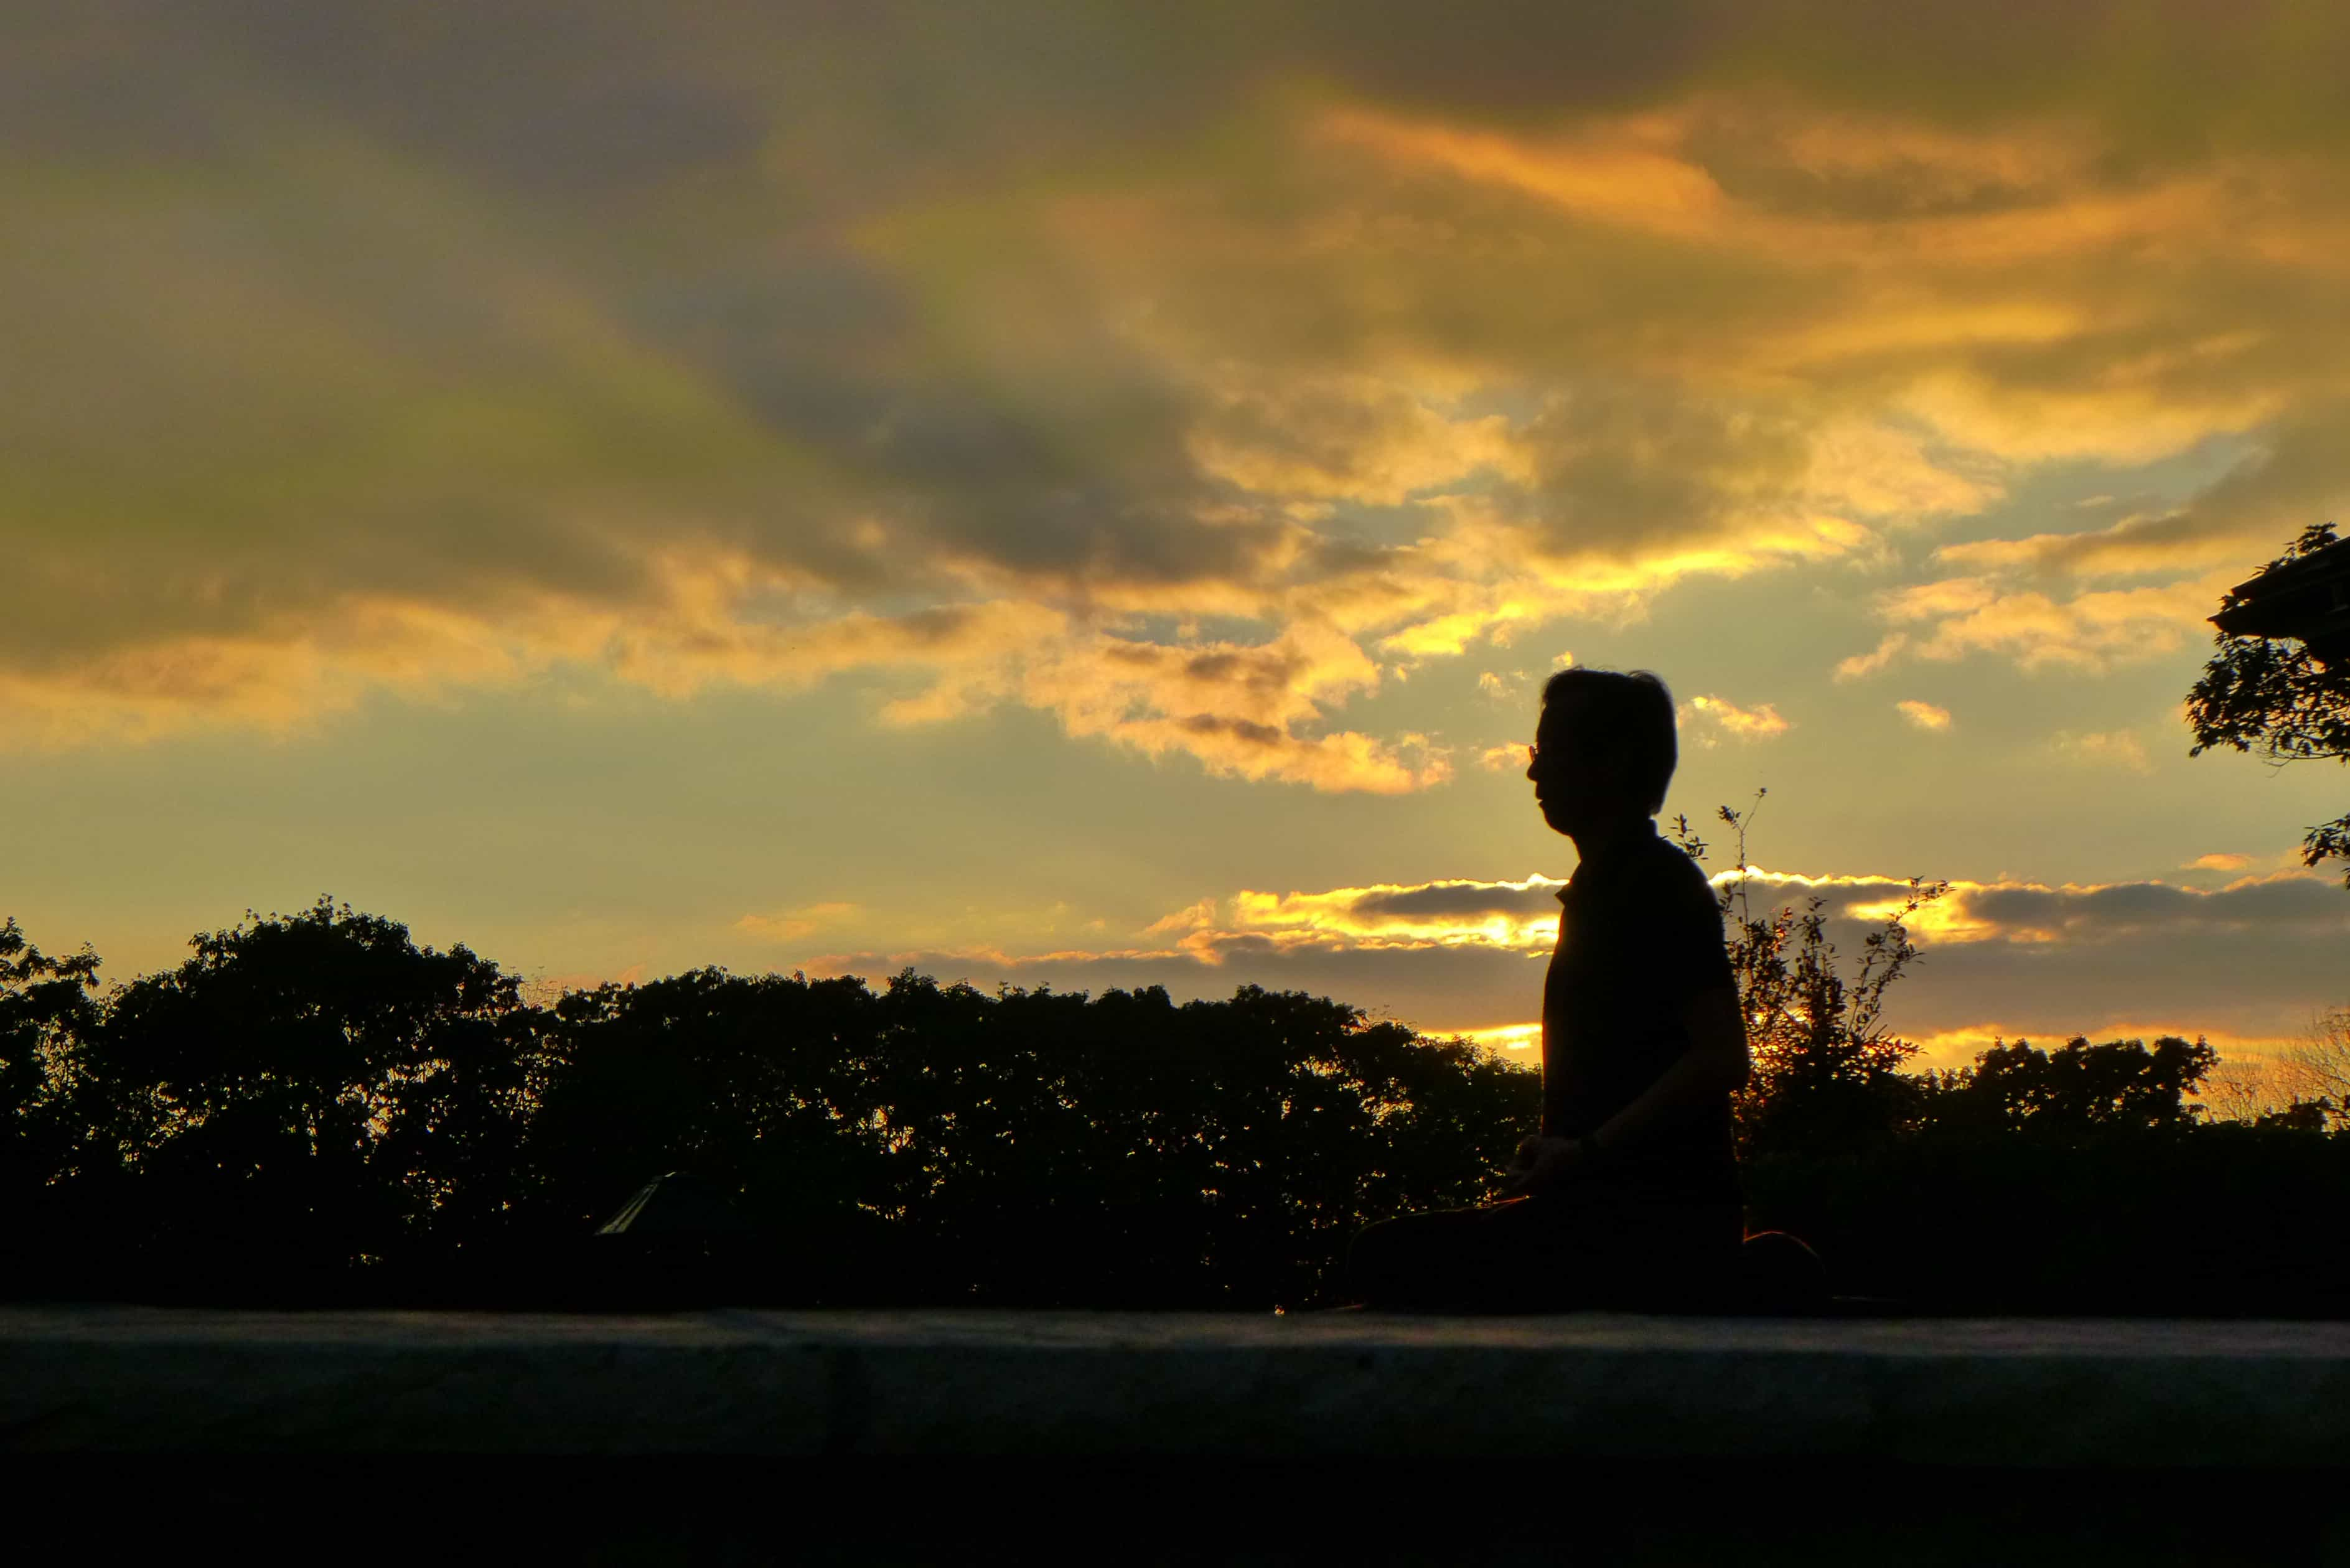 Seated man silhouetted at sunset